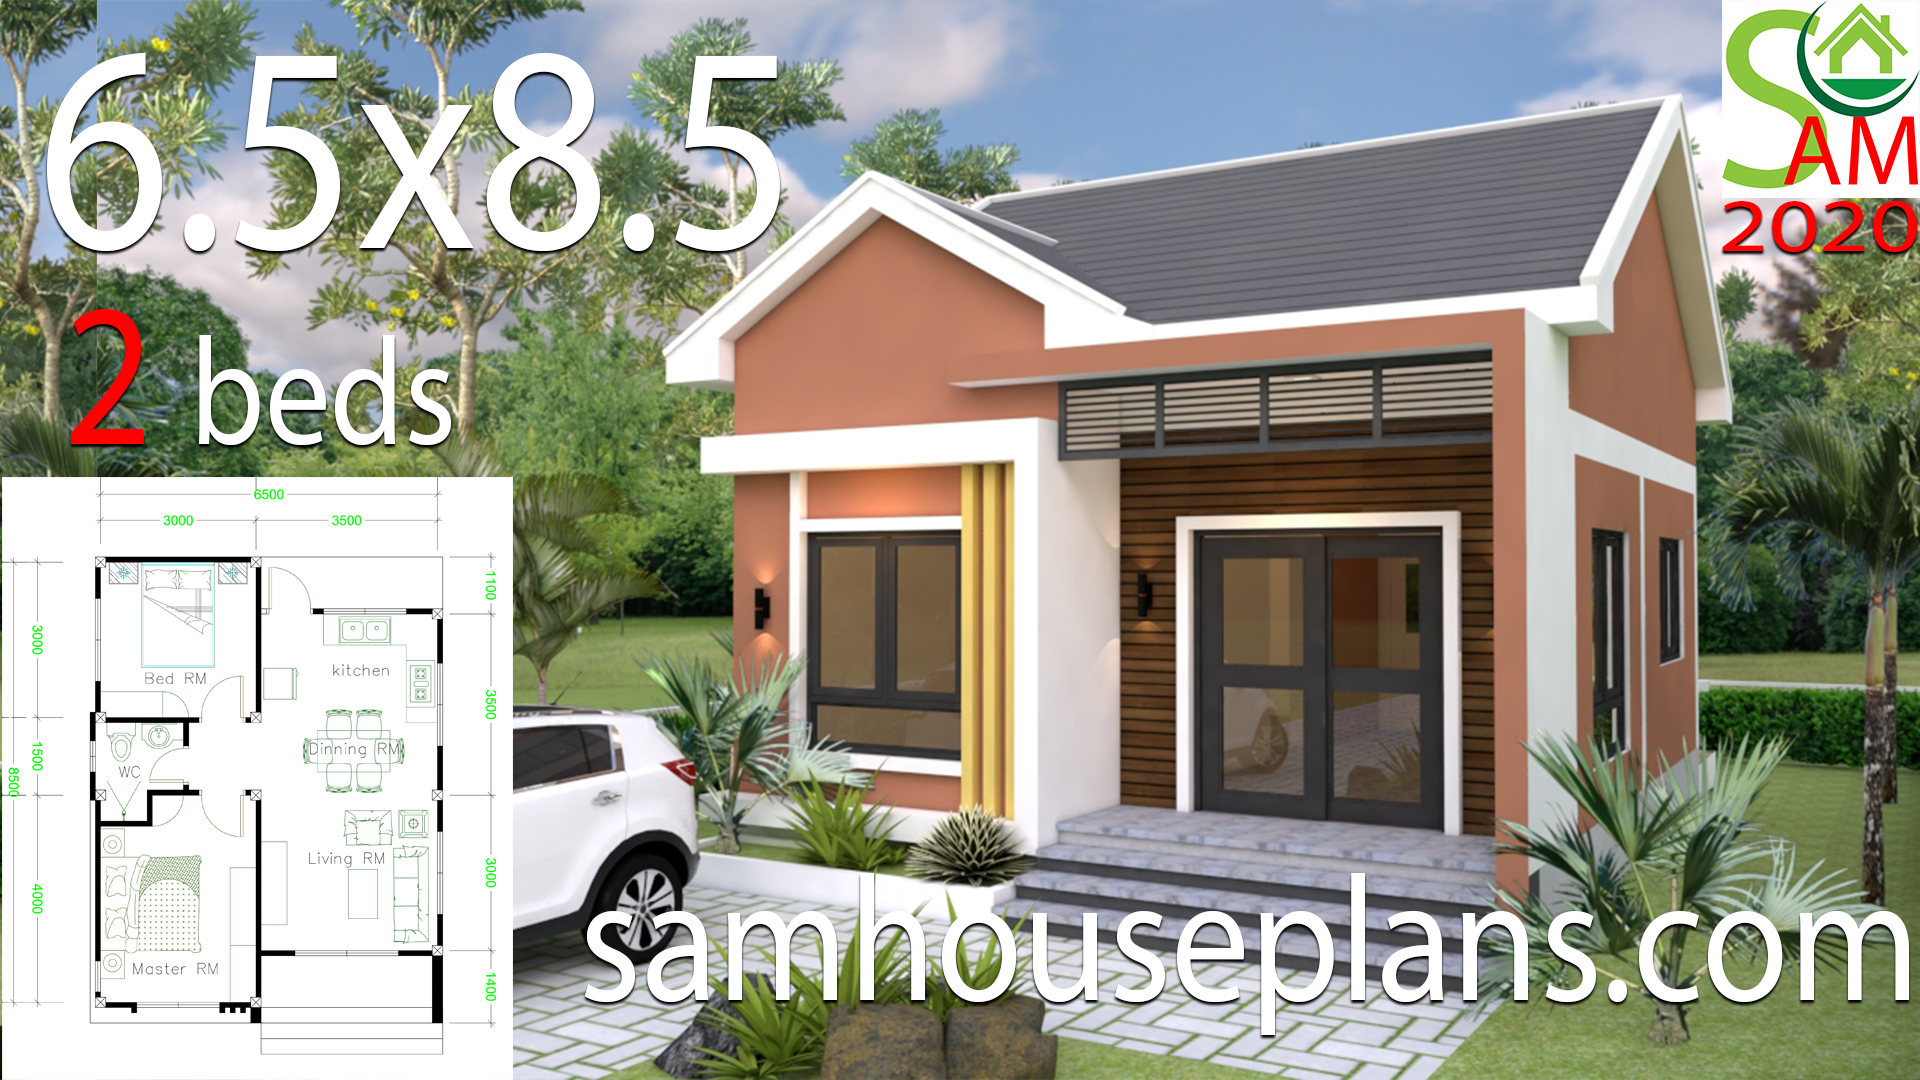 Small House Design Plans 6 5x8 5 With 2 Bedrooms Shed Roof